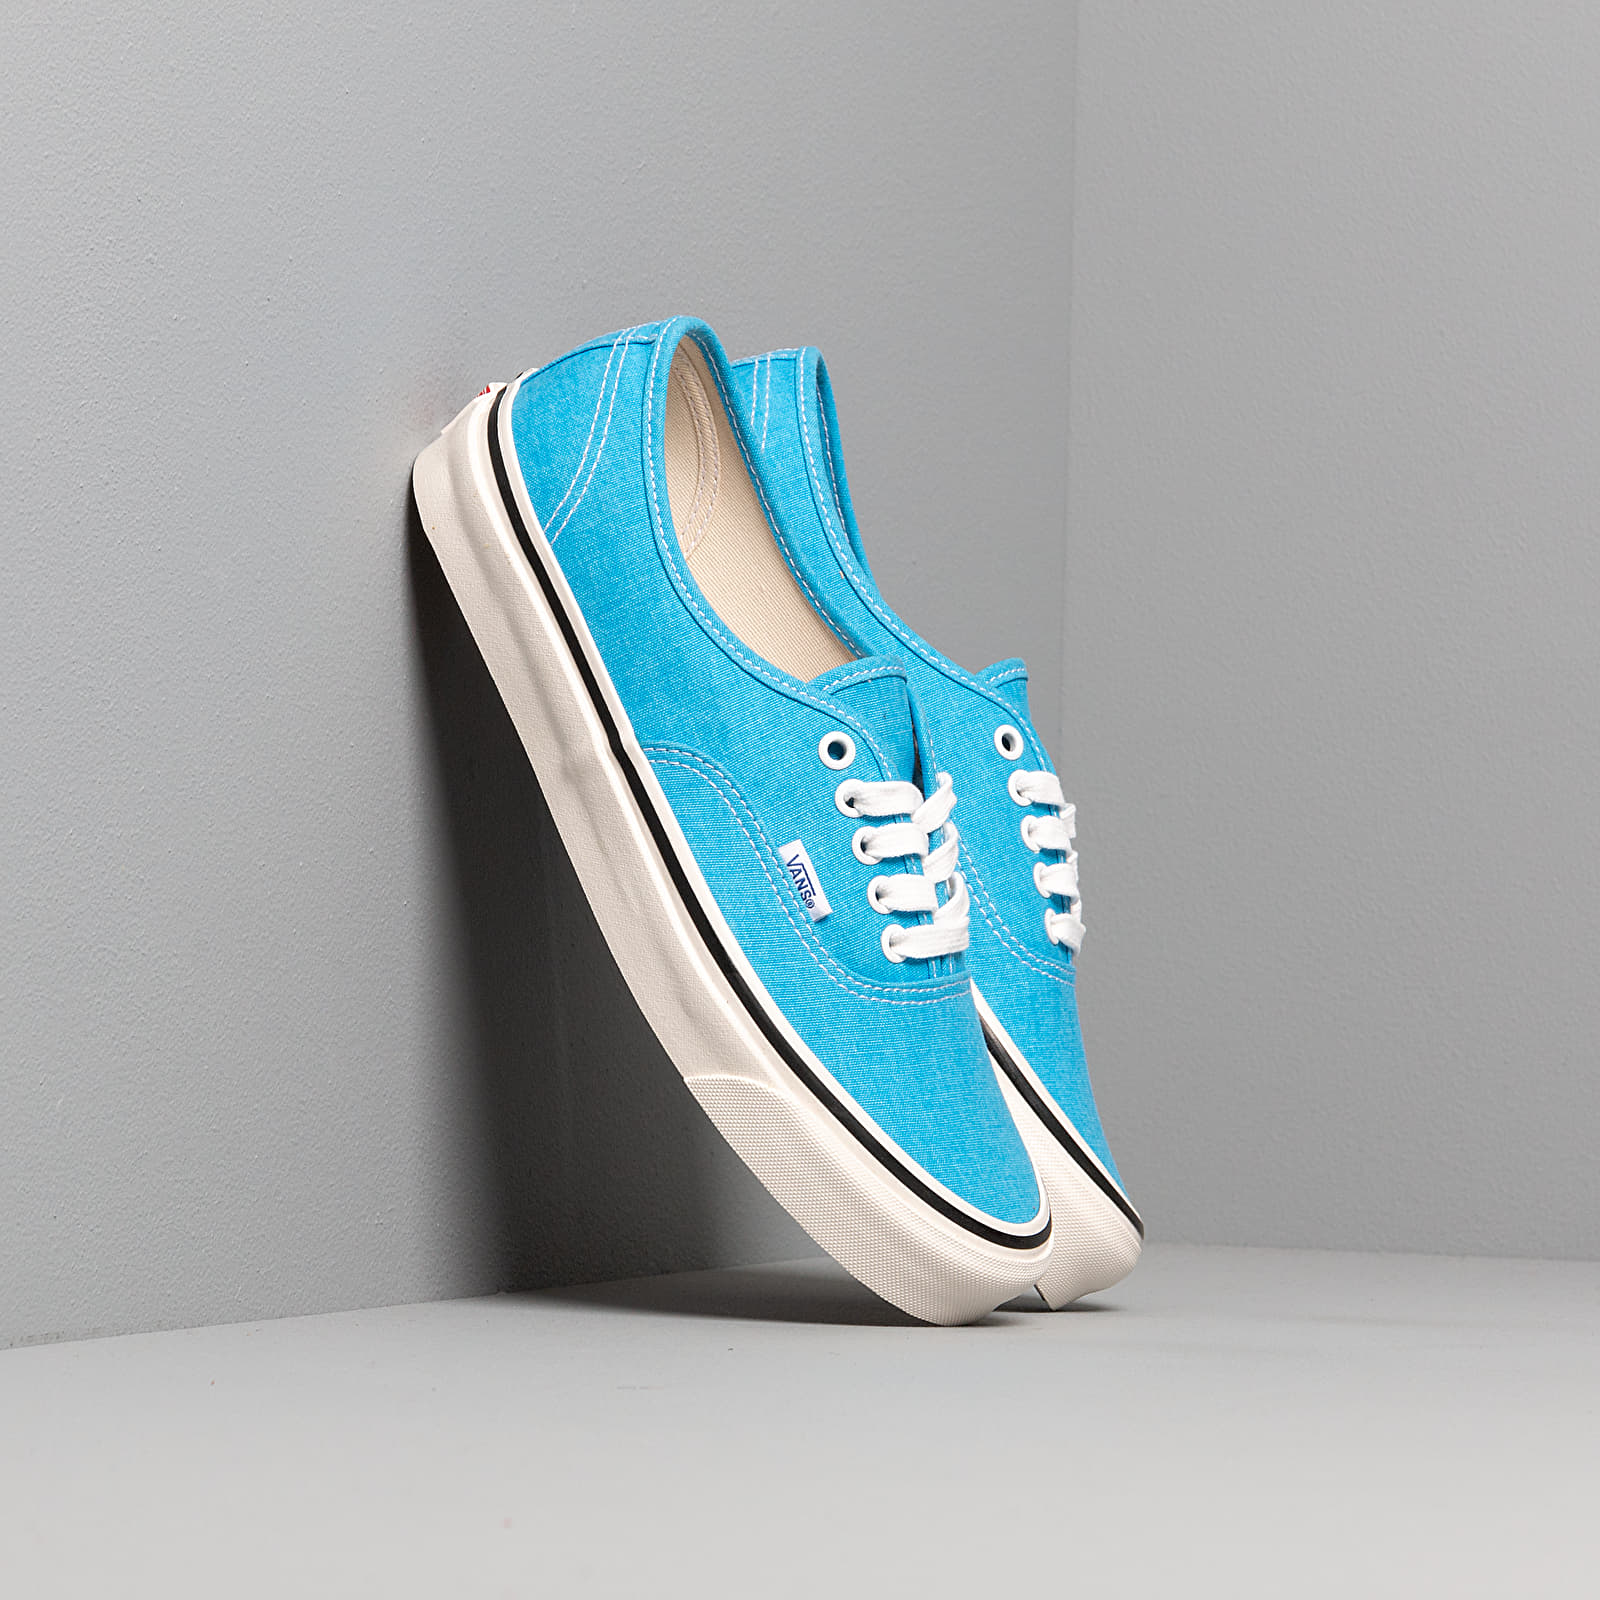 Férfi cipők Vans Authentic 44 Dx Blue/ White